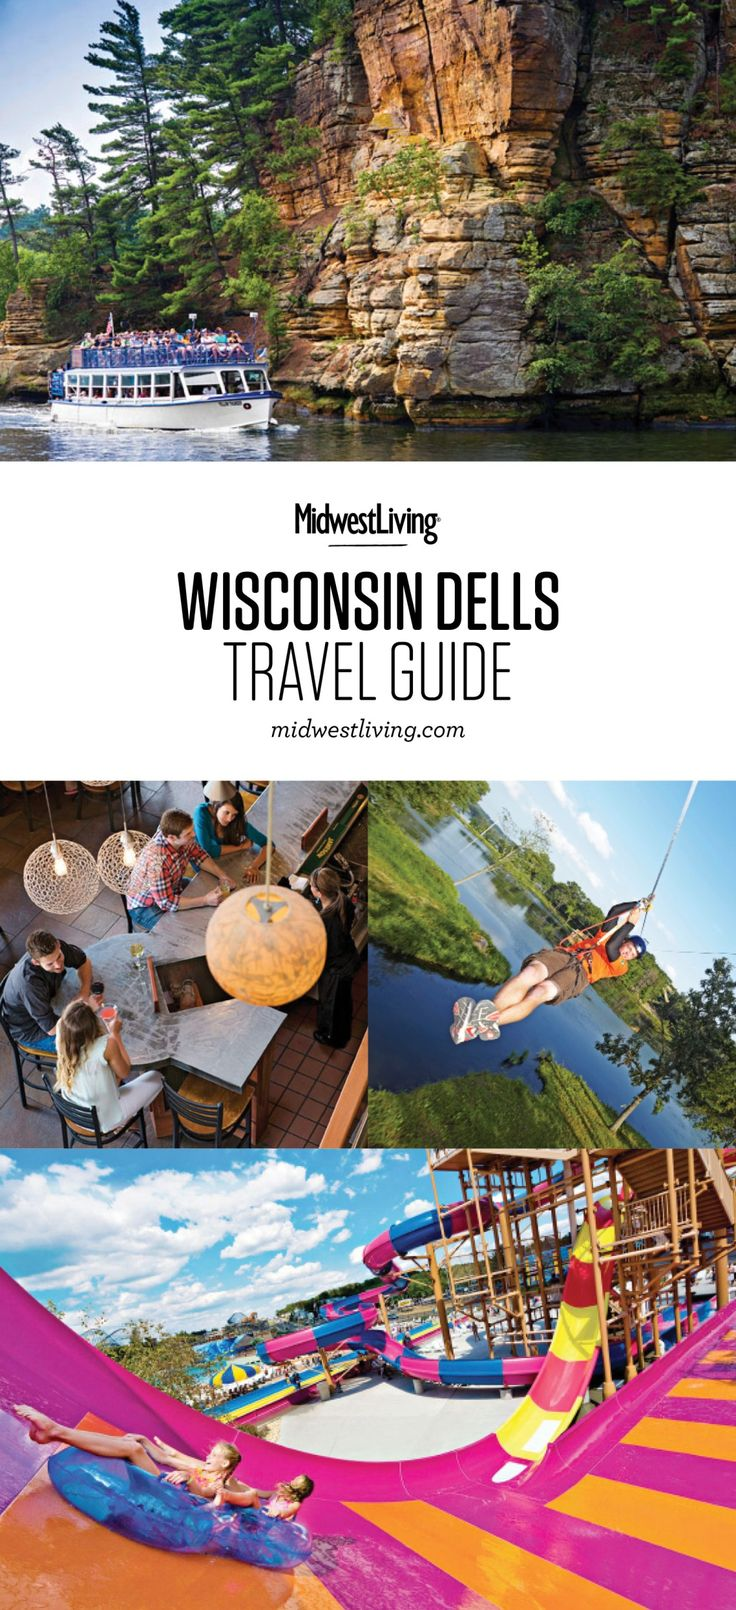 It's all about getting on the water in the Dells. Boat tours introduce today's visitors to what first drew tourists to this region, and water parks thrill them with wave pools and towering slides. Check out our picks for what to do, where to eat and where to stay in the Wisconsin Dells.